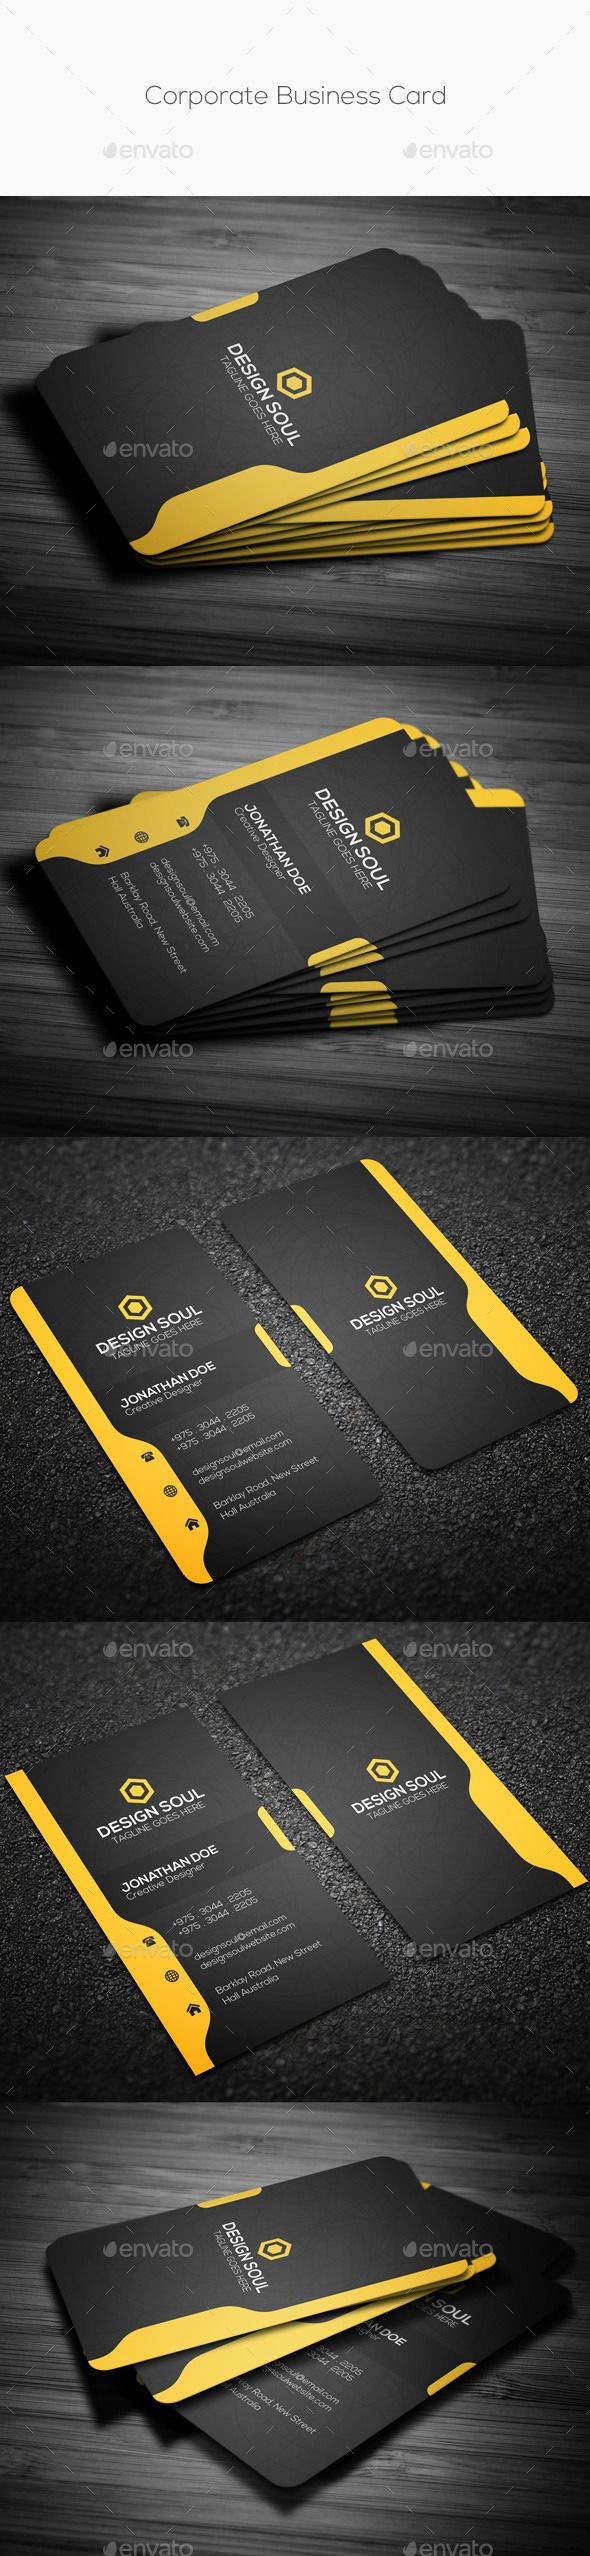 89 best business cards images on pinterest business card design business cards templates business cards design business cards free business card size business cards cheap business reheart Choice Image